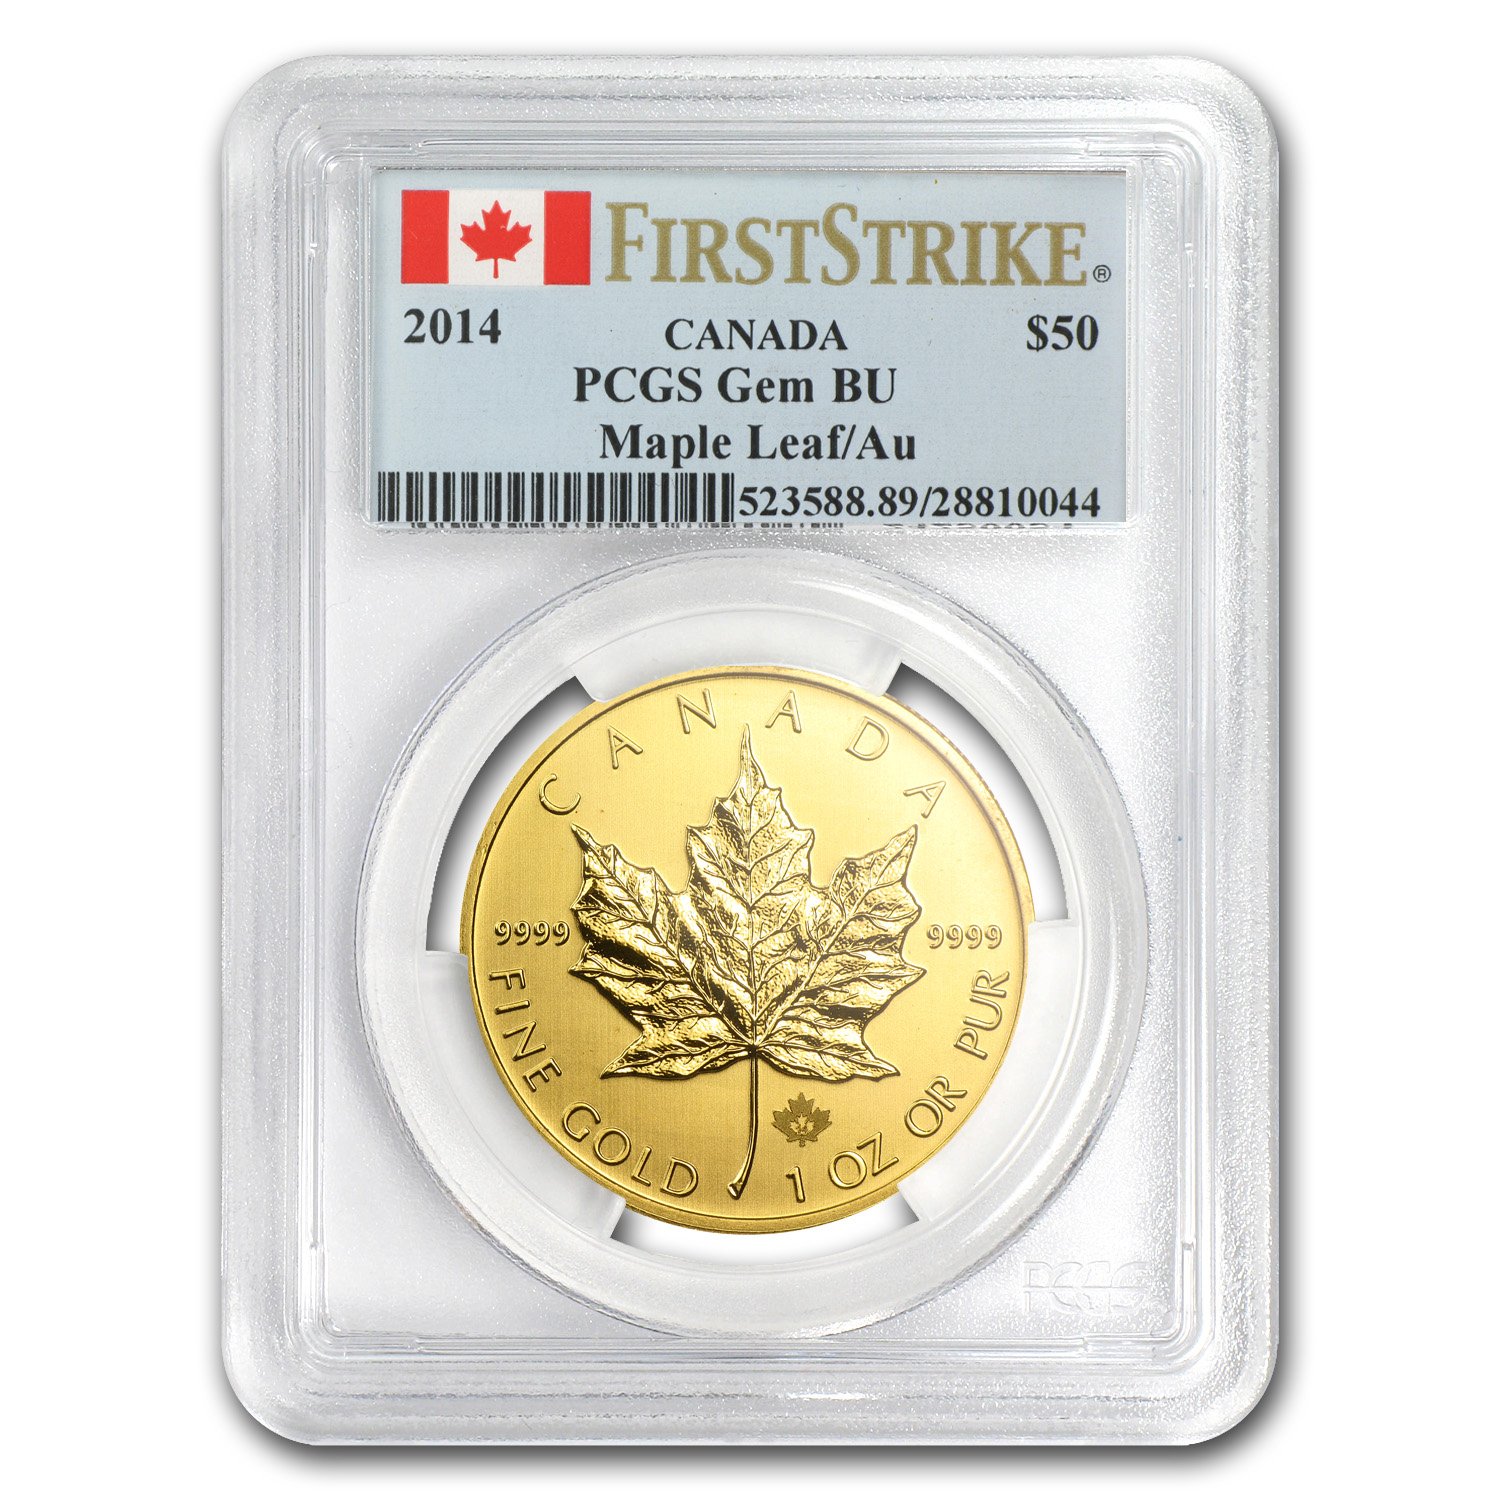 2014 Canada 1 oz Gold Maple Leaf Gem BU PCGS (First Strike)